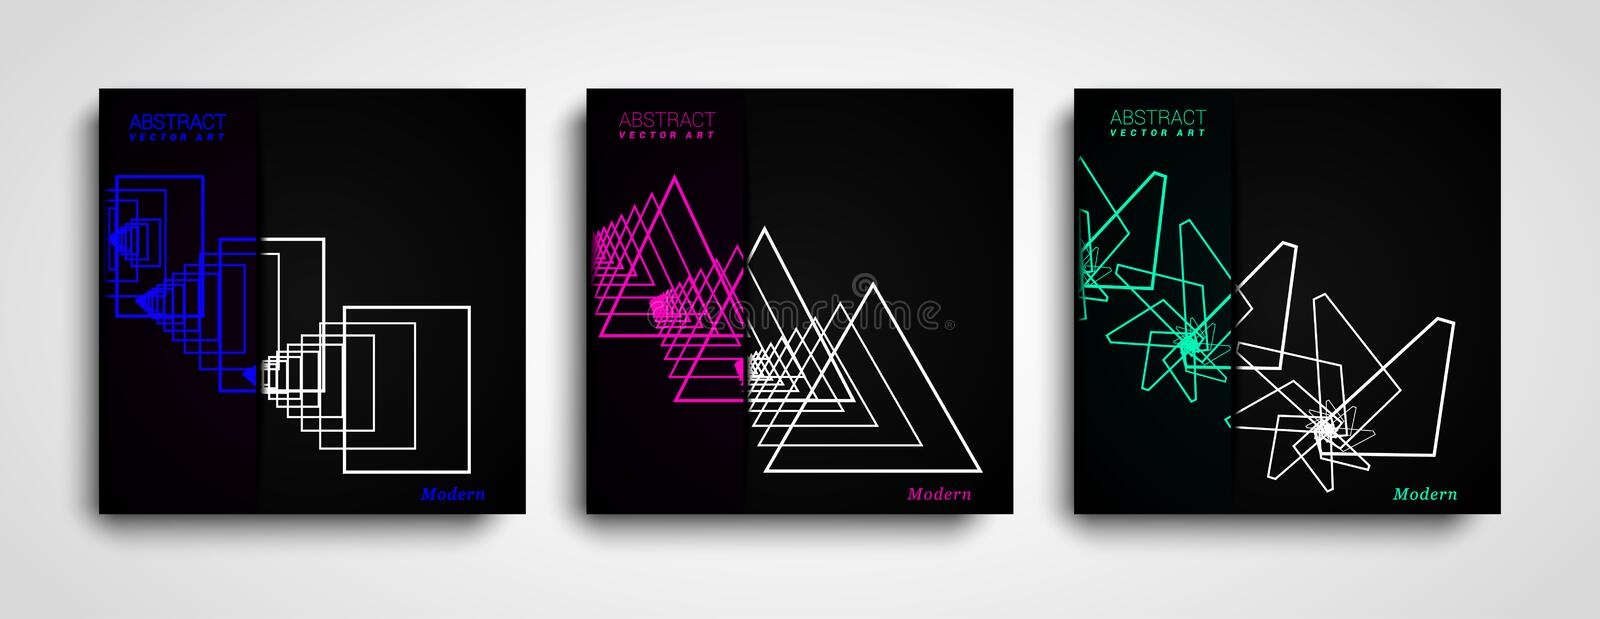 Set of Geometric Abstract shapes compositions. Trendy minimal design. Modern geometric shapes color covers set. Set of Geometric Abstract shapes compositions vector illustration